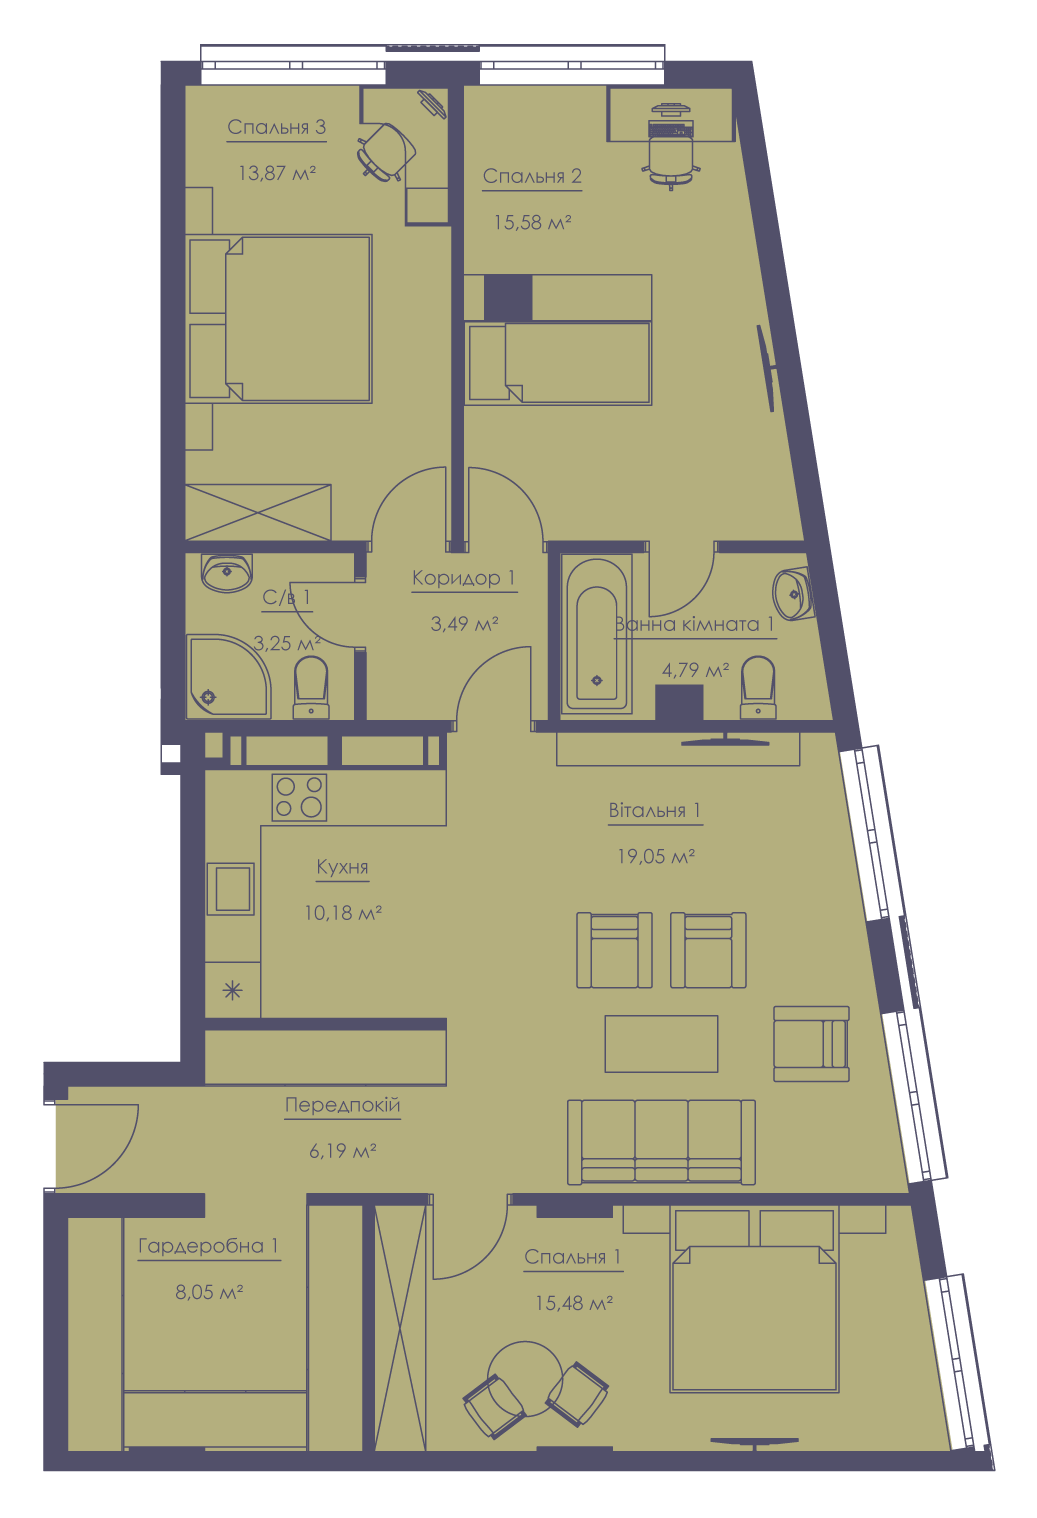 Apartment layout KV_47_4g_1_1_11-1